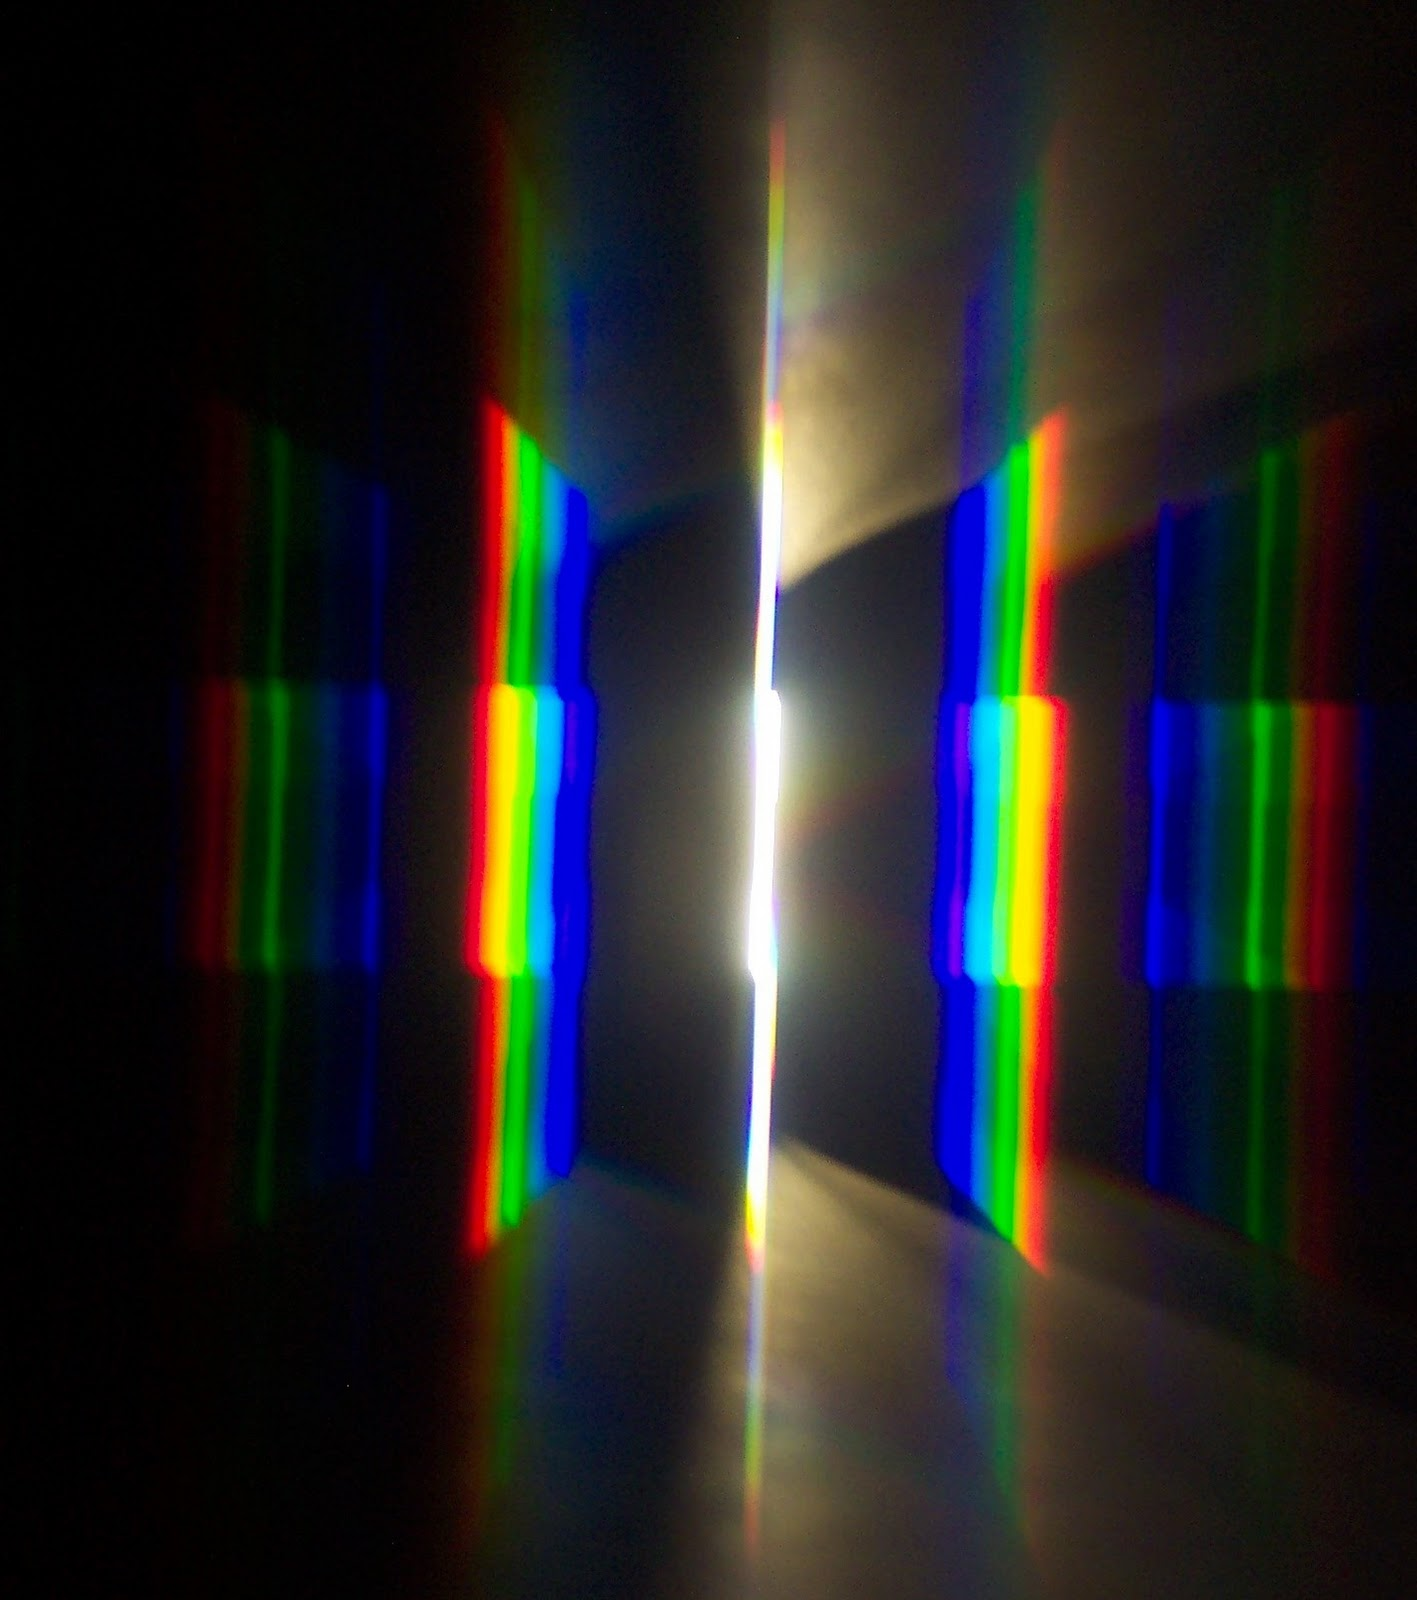 Fluorescent Light Line Spectrum: Integrated Science At Home: Observing Energy Levels Of